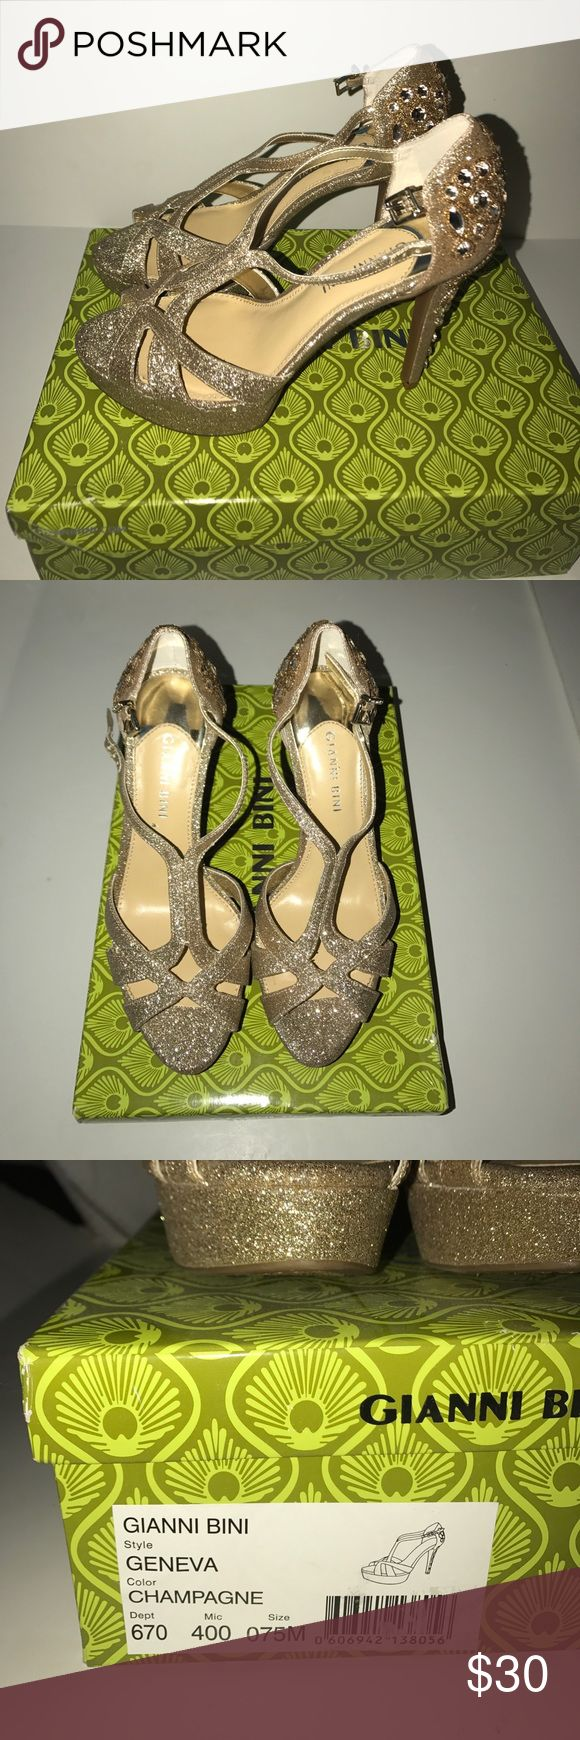 Gianni Bini Geneva Gold Dress Sandal Worn once. Comes with original box. Beautiful high gold heels. Great for special occasions. Size 7.5 Gianni Bini Shoes Heels